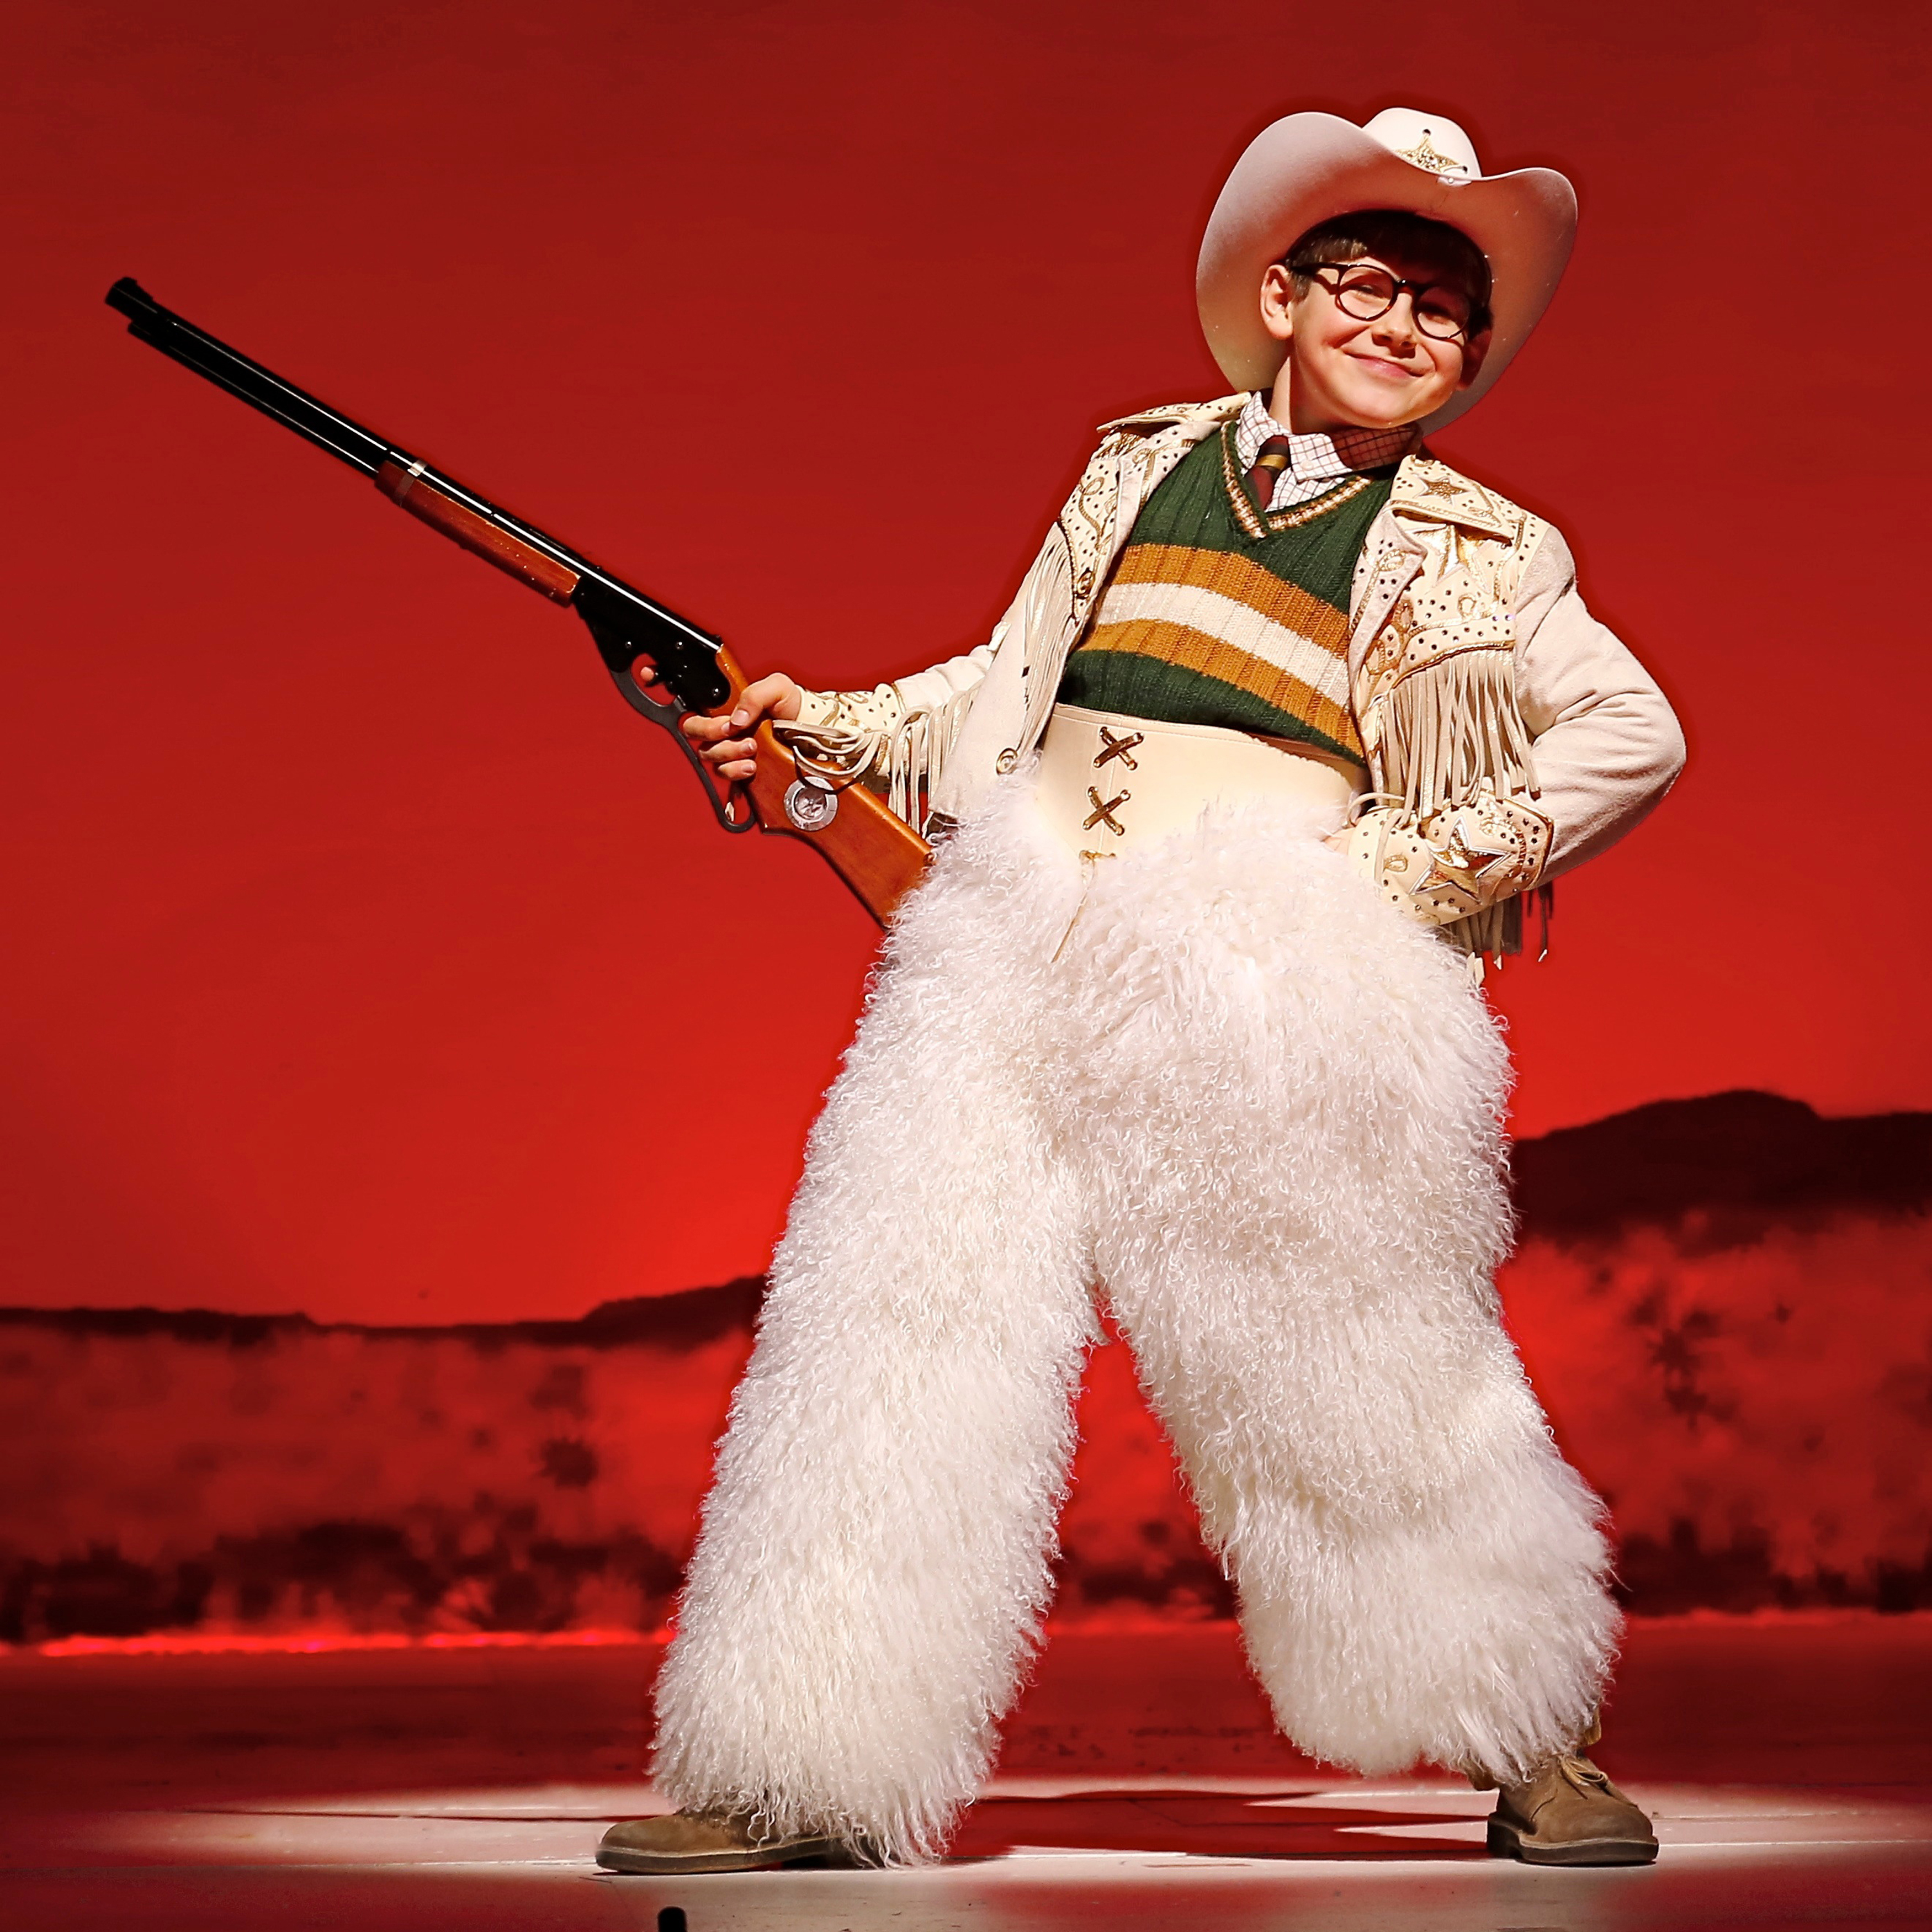 In A Christmas Story, Johnny Rabe plays Ralphie Parker, a boy who wants only one thing for Christmas: an official Red Ryder Carbine-Action 200-shot Range Model Air Rifle.